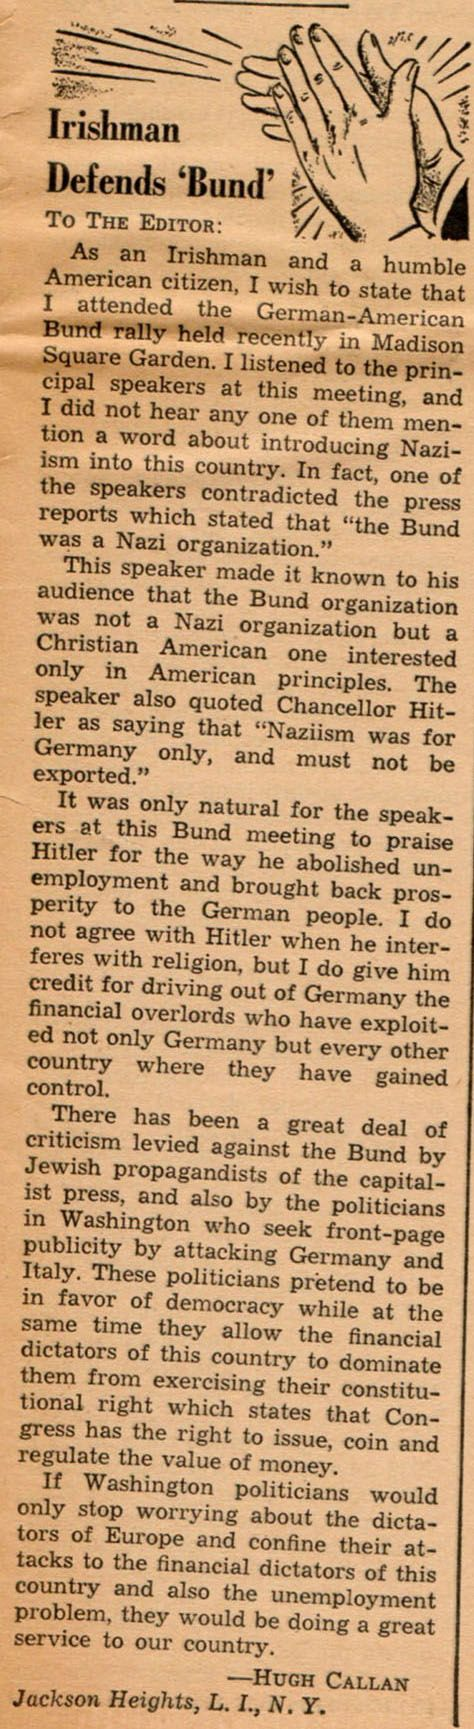 """Irishman Defends """"Bund""""' --An interesting letter from the newspaper 'Social Justice' (April 3, 1939), done by Father Charles Coughlin."""